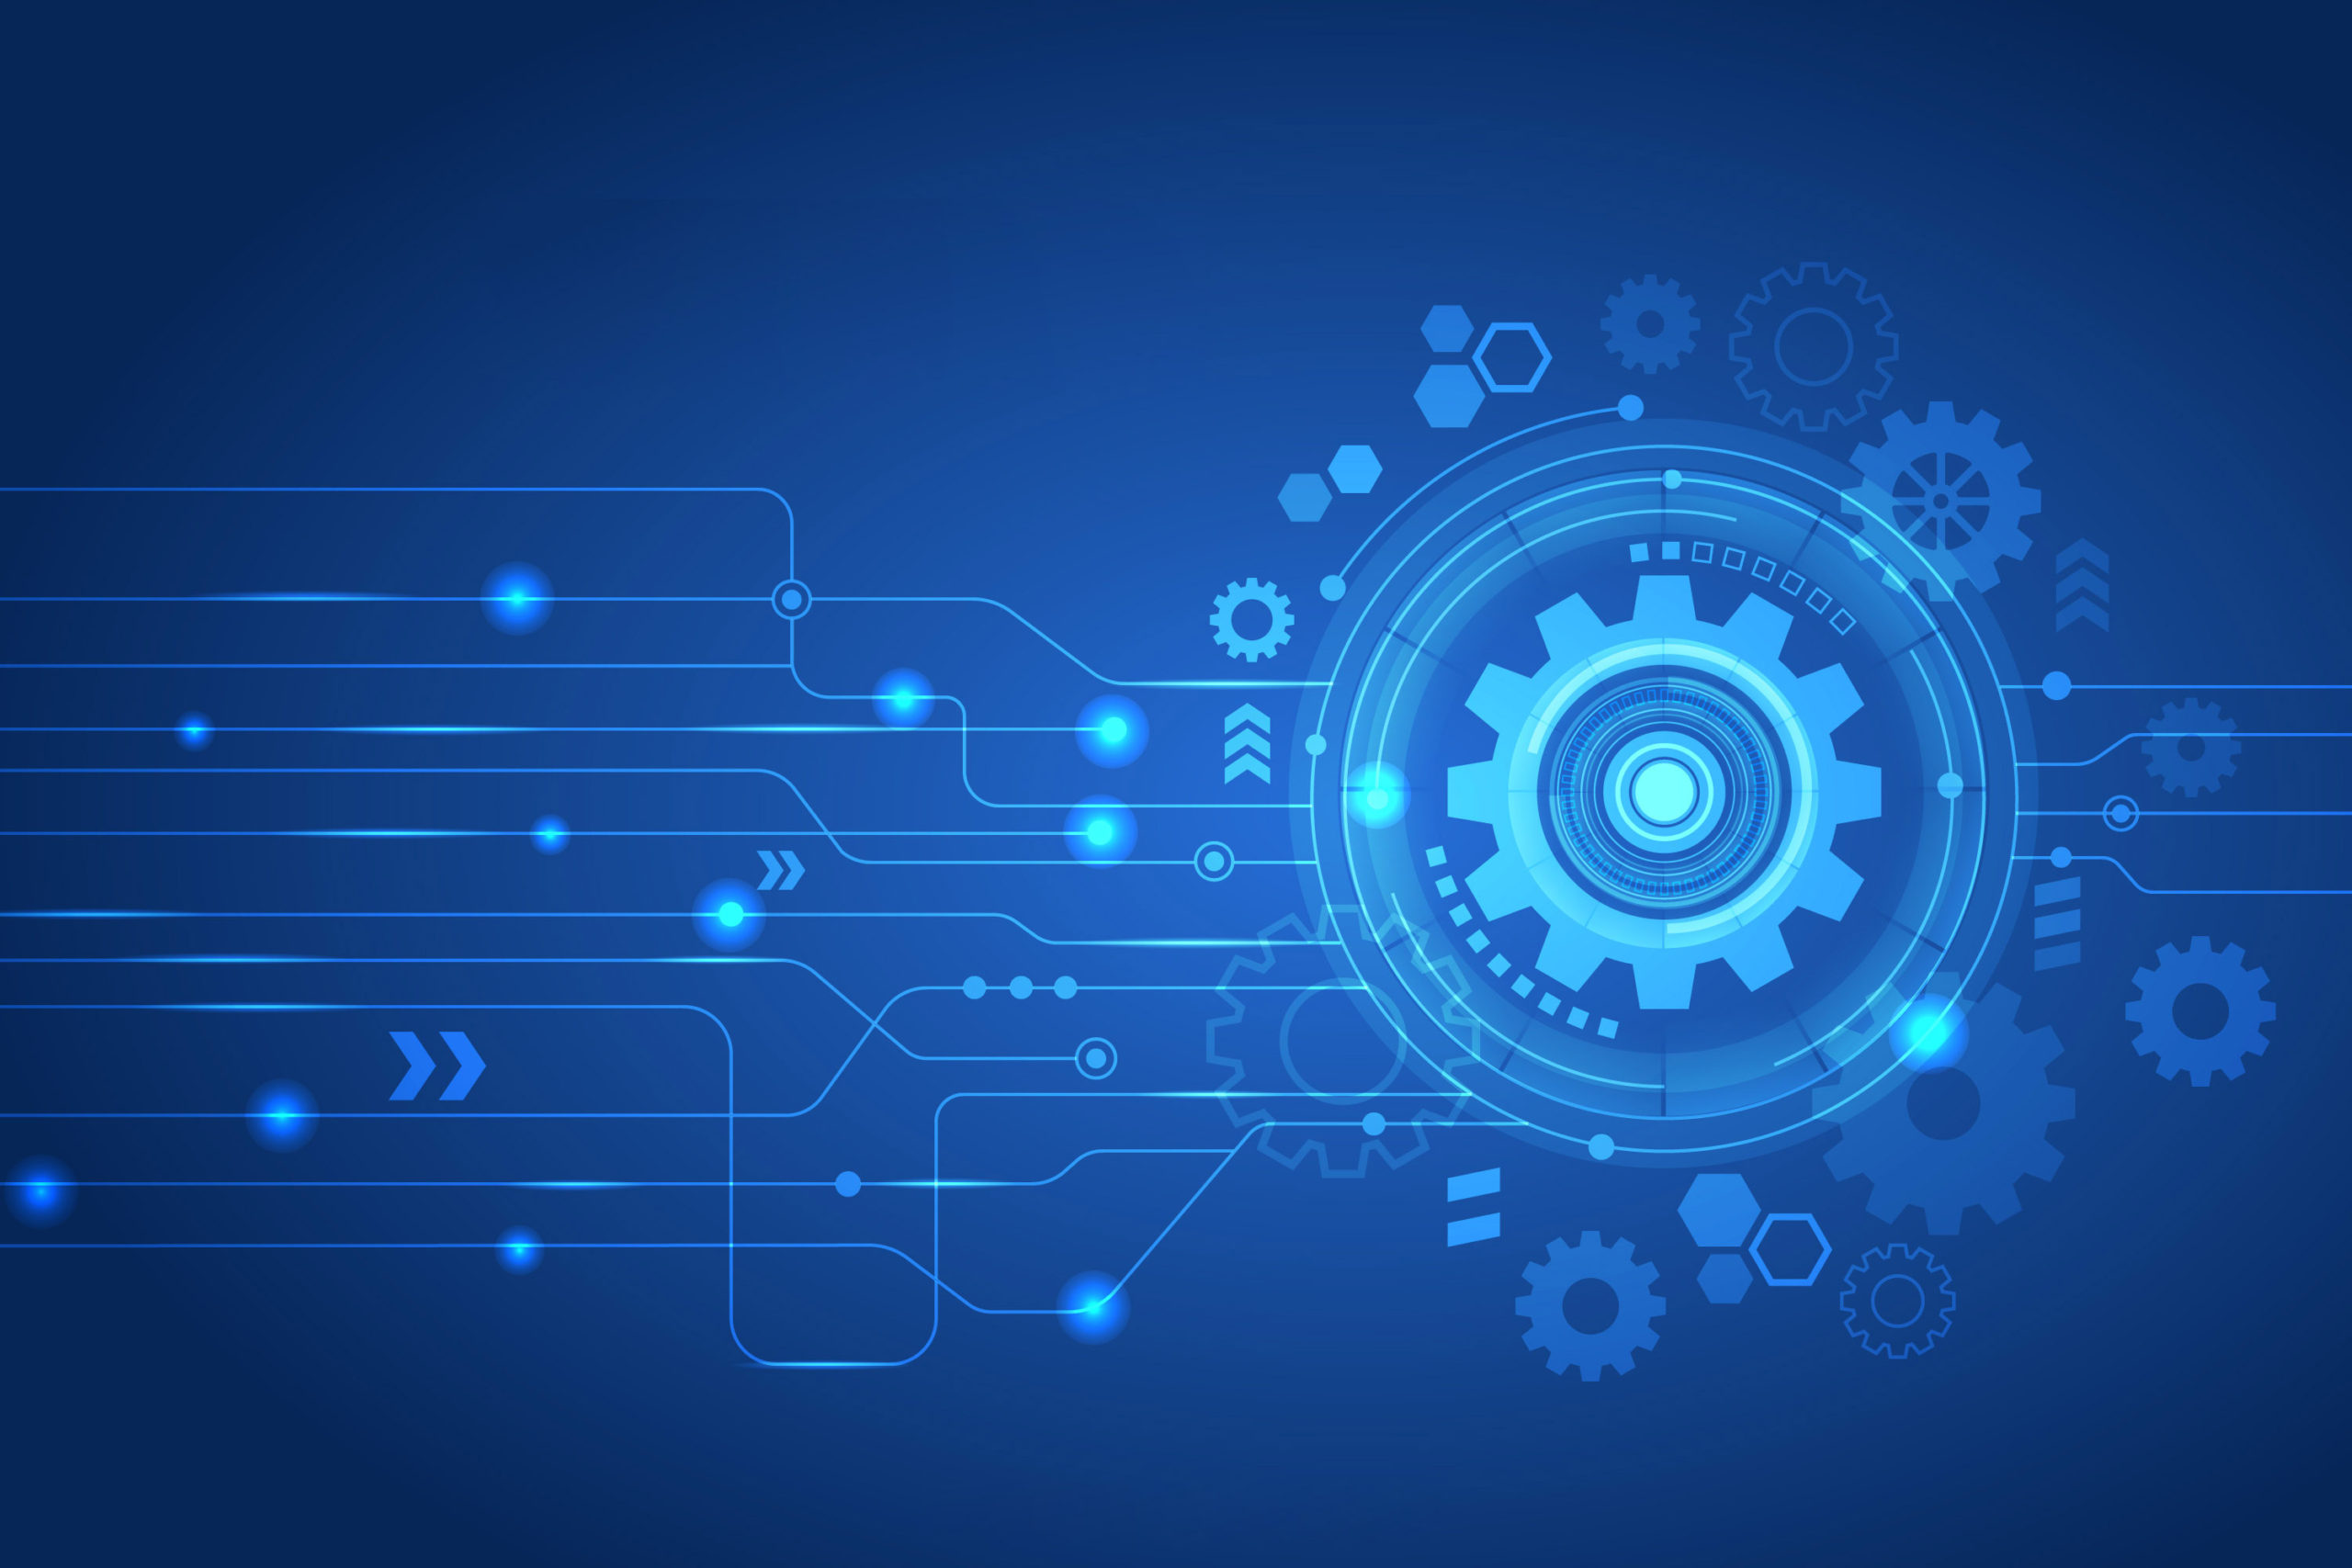 Network vulnerability assessment enhances security and compliance posture